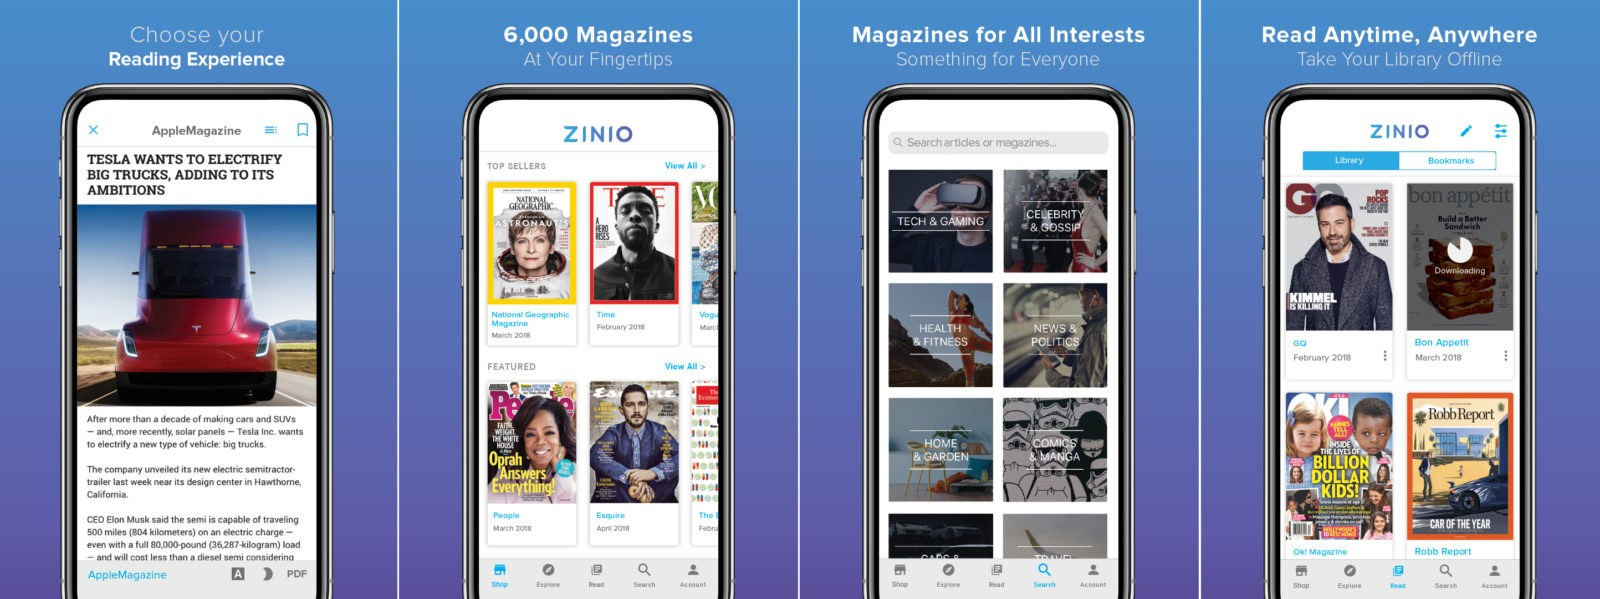 ZINIO App optimized for mobile devices